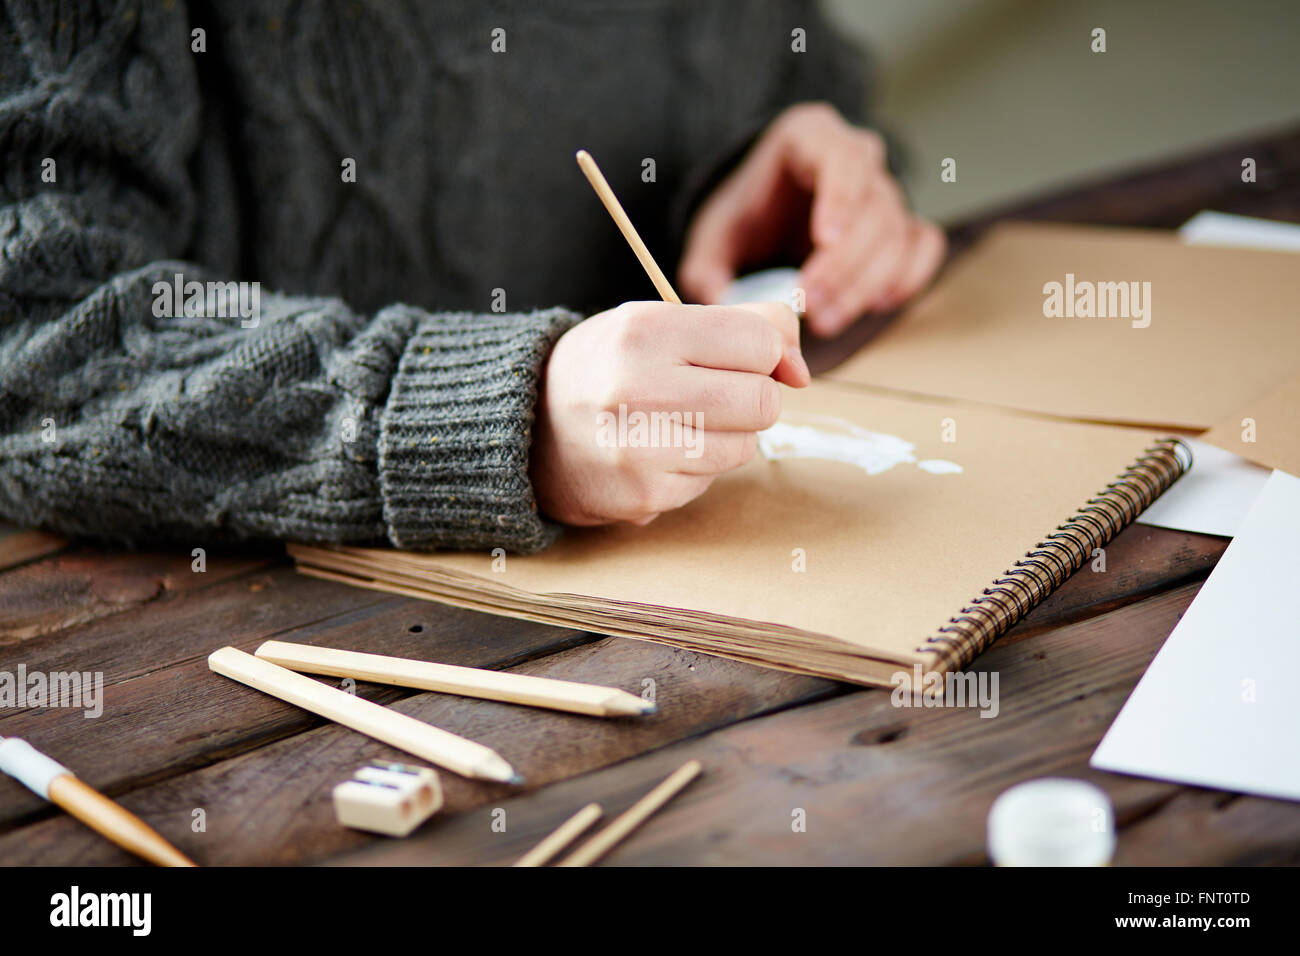 Close-up of male hands drawing in notebook - Stock Image